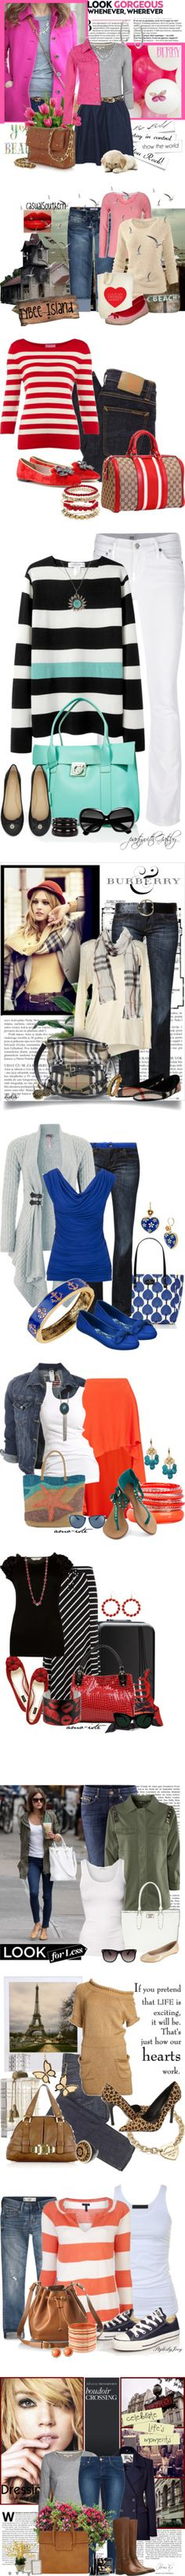 """Weekend 17"" by kimsteenkamp ❤ liked on Polyvore"